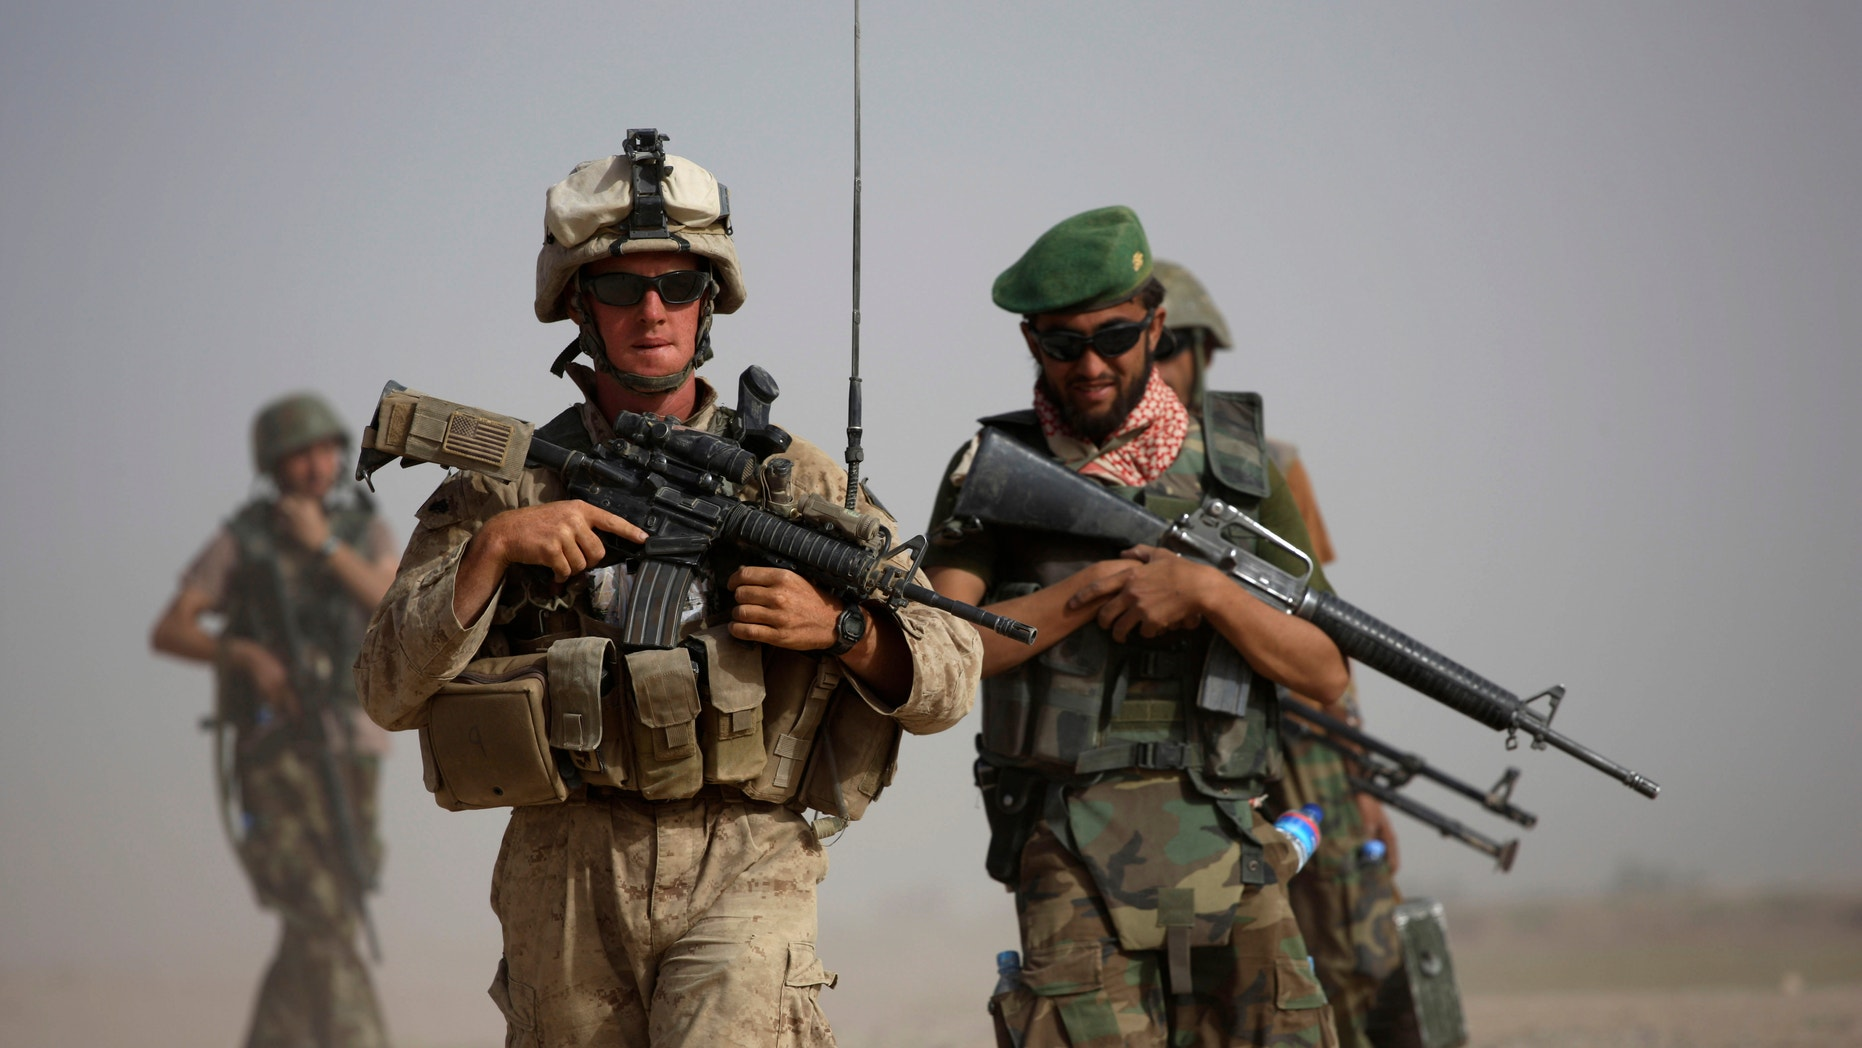 FILE: U.S. Marine squad leader Sgt. Matthew Duquette, left, of Warrenville, Ill., with Bravo Company, 1st Battalion 5th Marines walks with Afghan National Army Lt. Hussein, during in a joint patrol in Nawa district, Helmand province, southern Afghanistan.